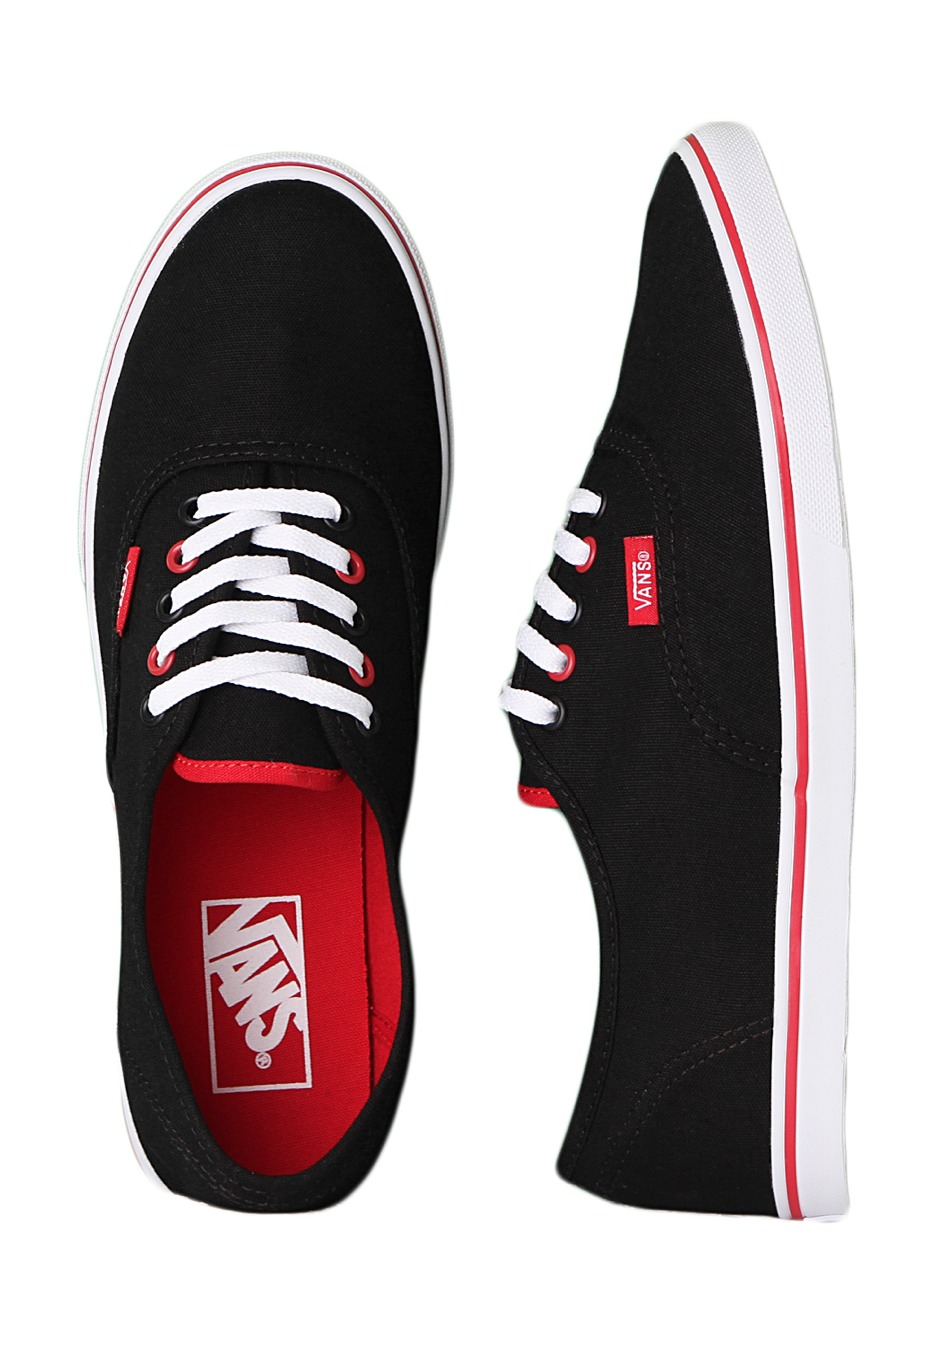 df0af83c9162 Vans - Authentic Lo Pro Black True Red - Girl Shoes - Impericon.com  Worldwide